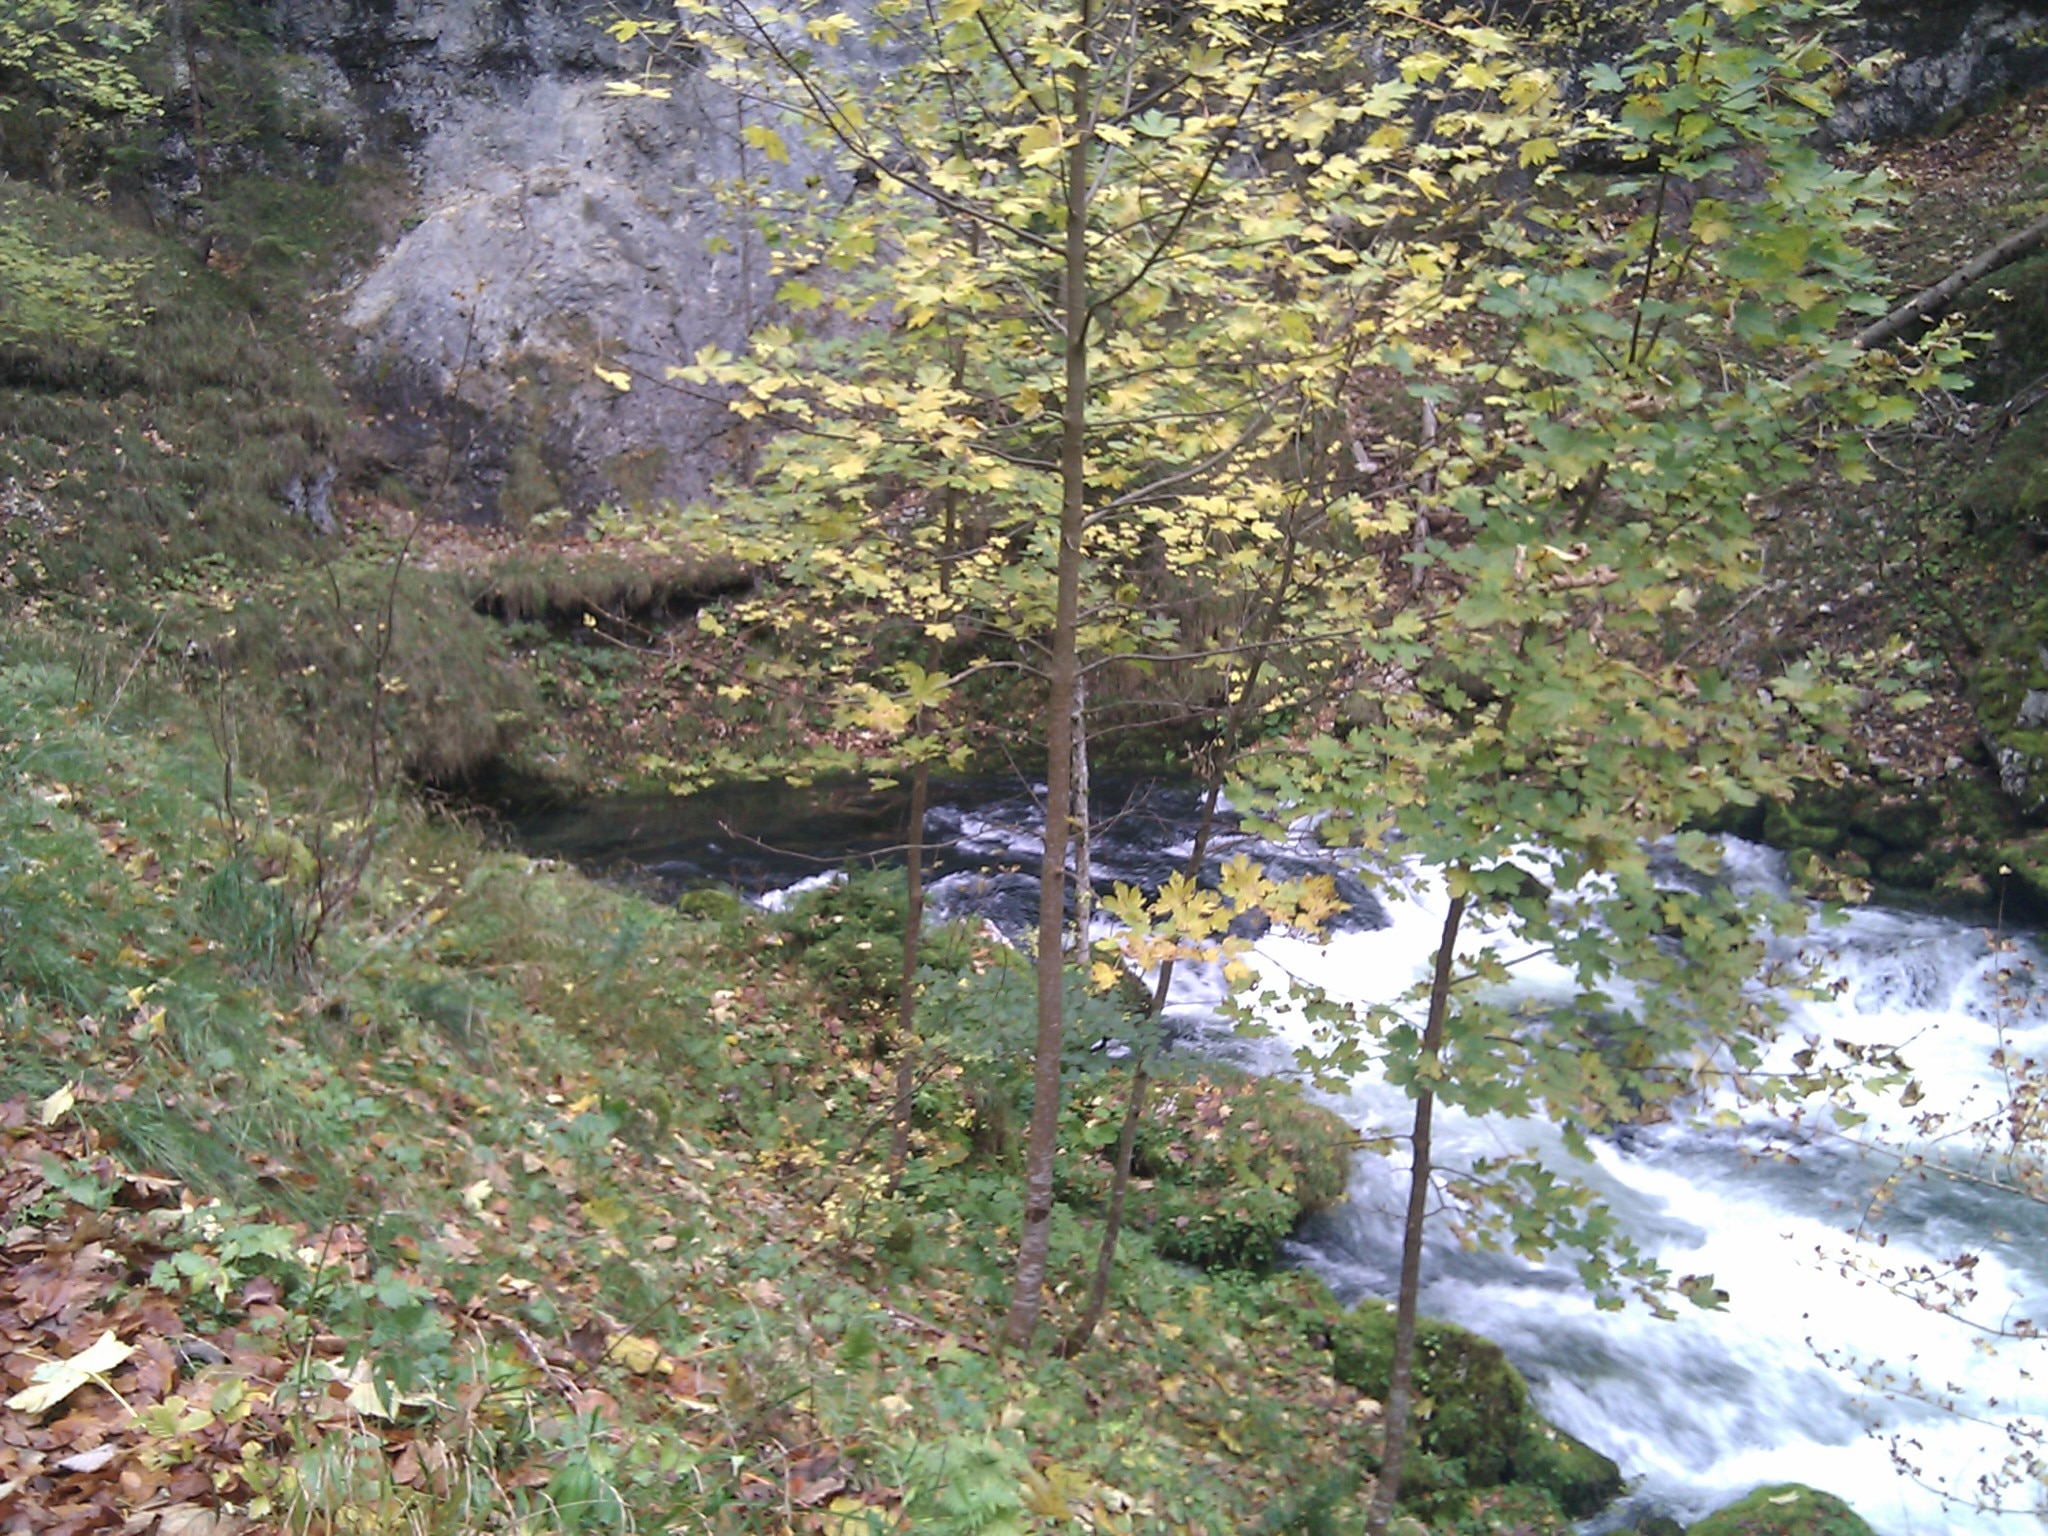 Where the River Orbe surges from the ground after several kilometres underground.